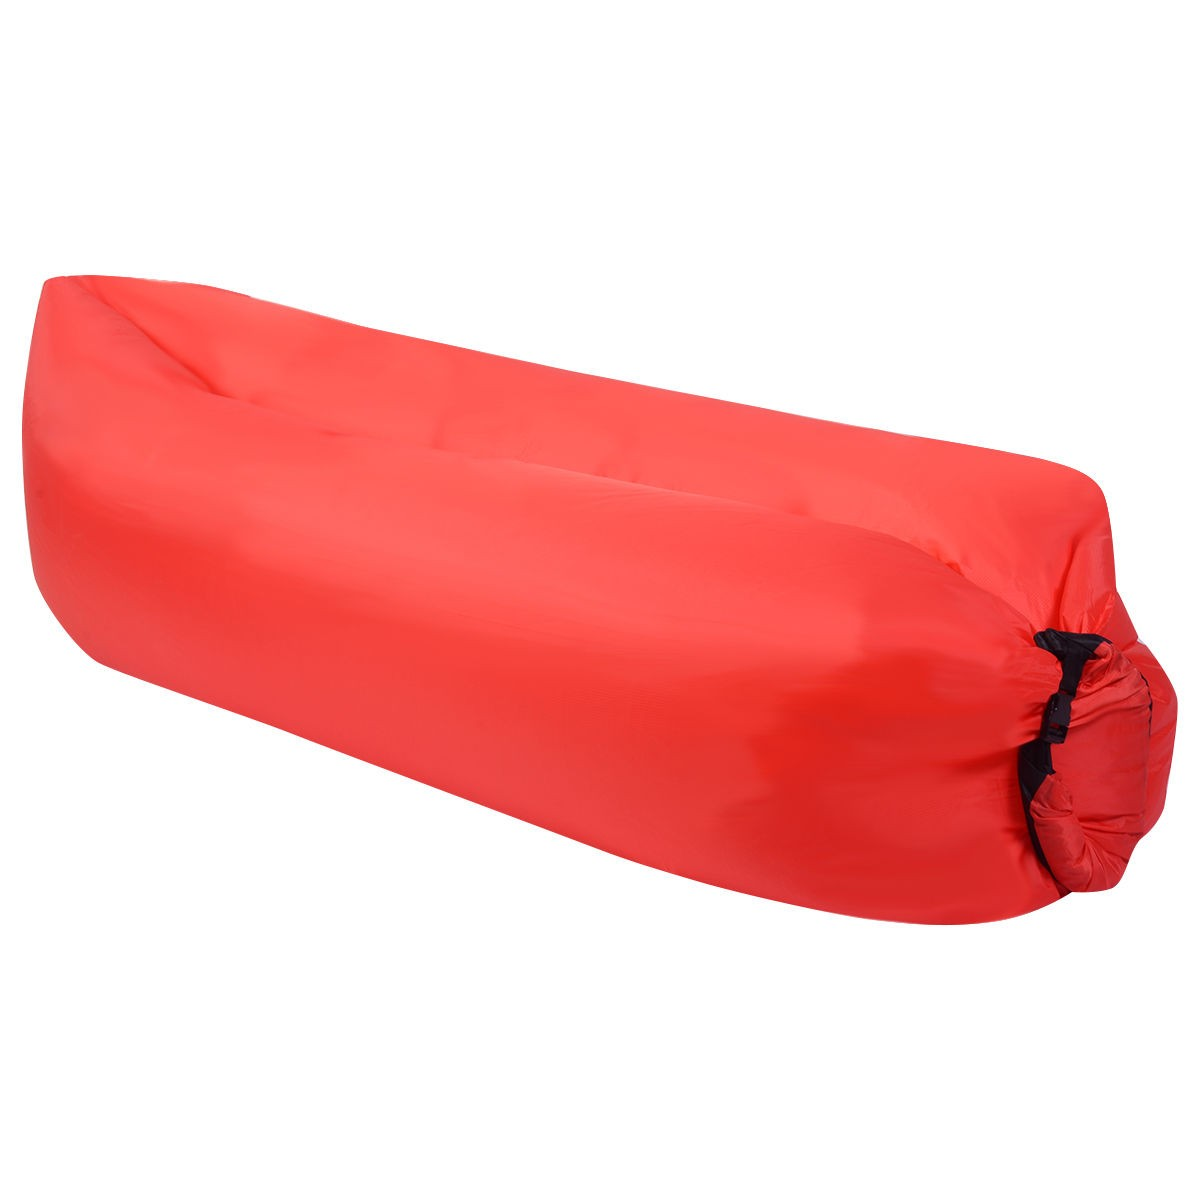 Outdoor Lazy Inflatable Couch Air Sleeping Sofa Lounger  : op3022reb from www.ebay.com size 1200 x 1200 jpeg 58kB